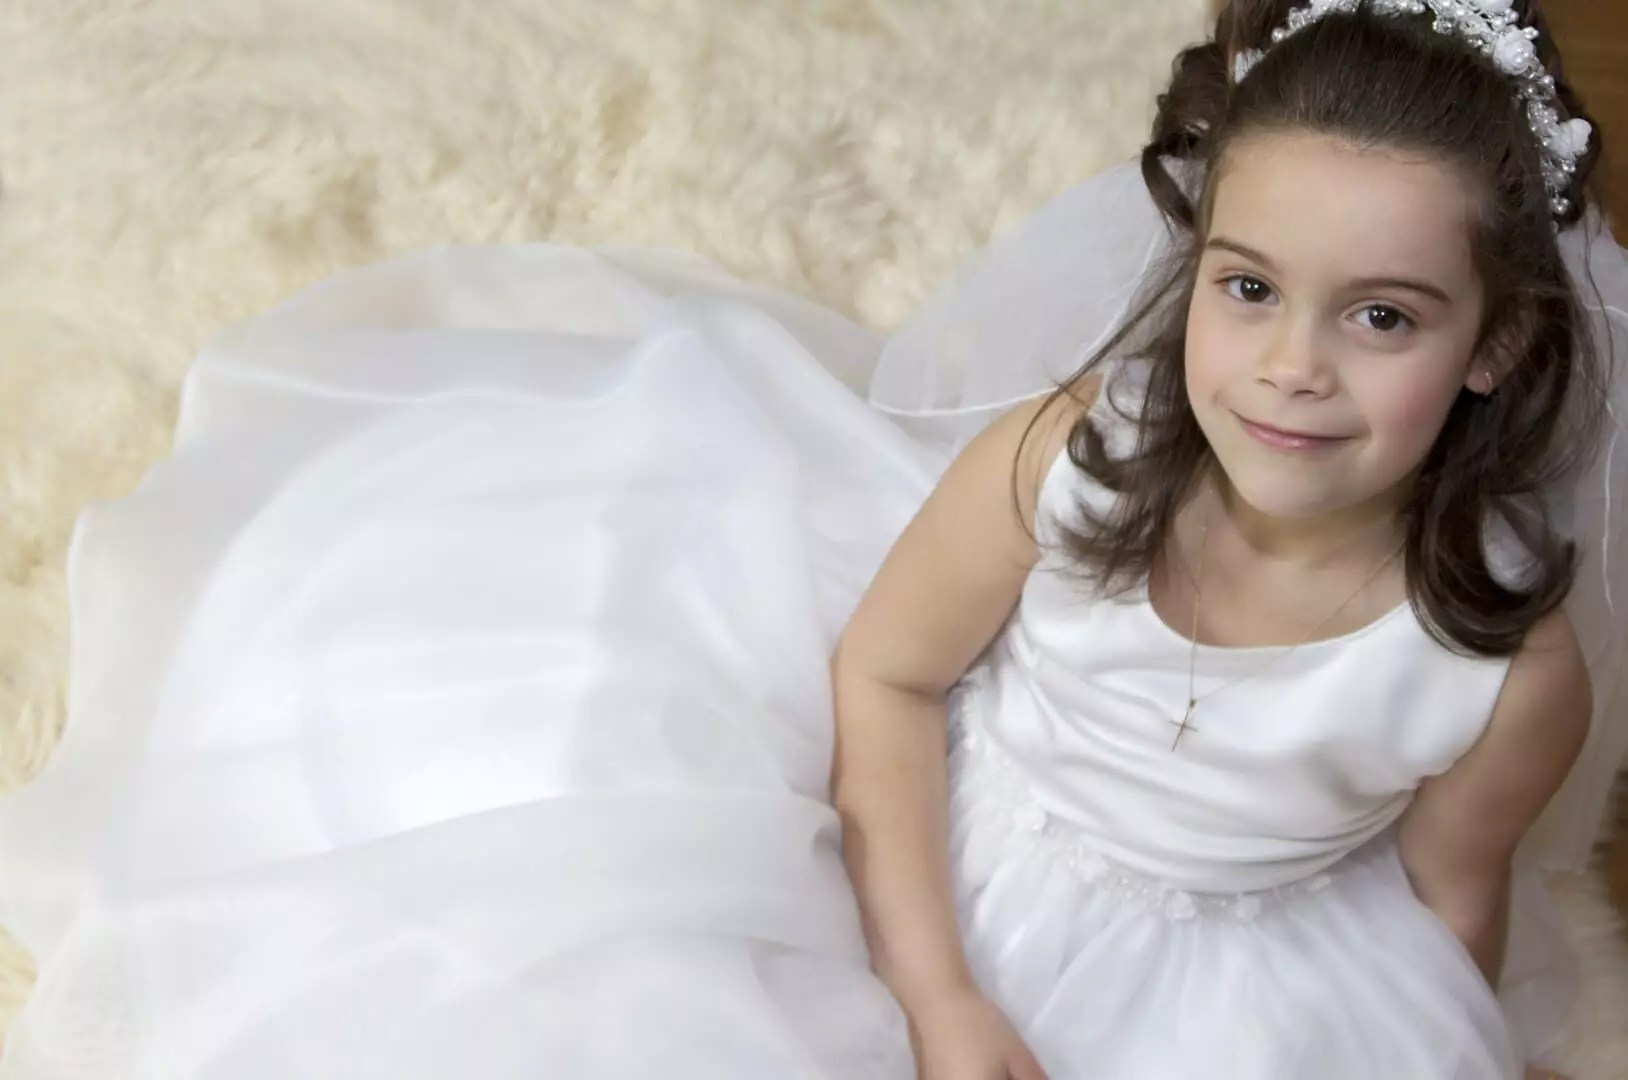 35aa02c9938d3 The Best Christening & Communion Boutiques in NJ - Best of NJ